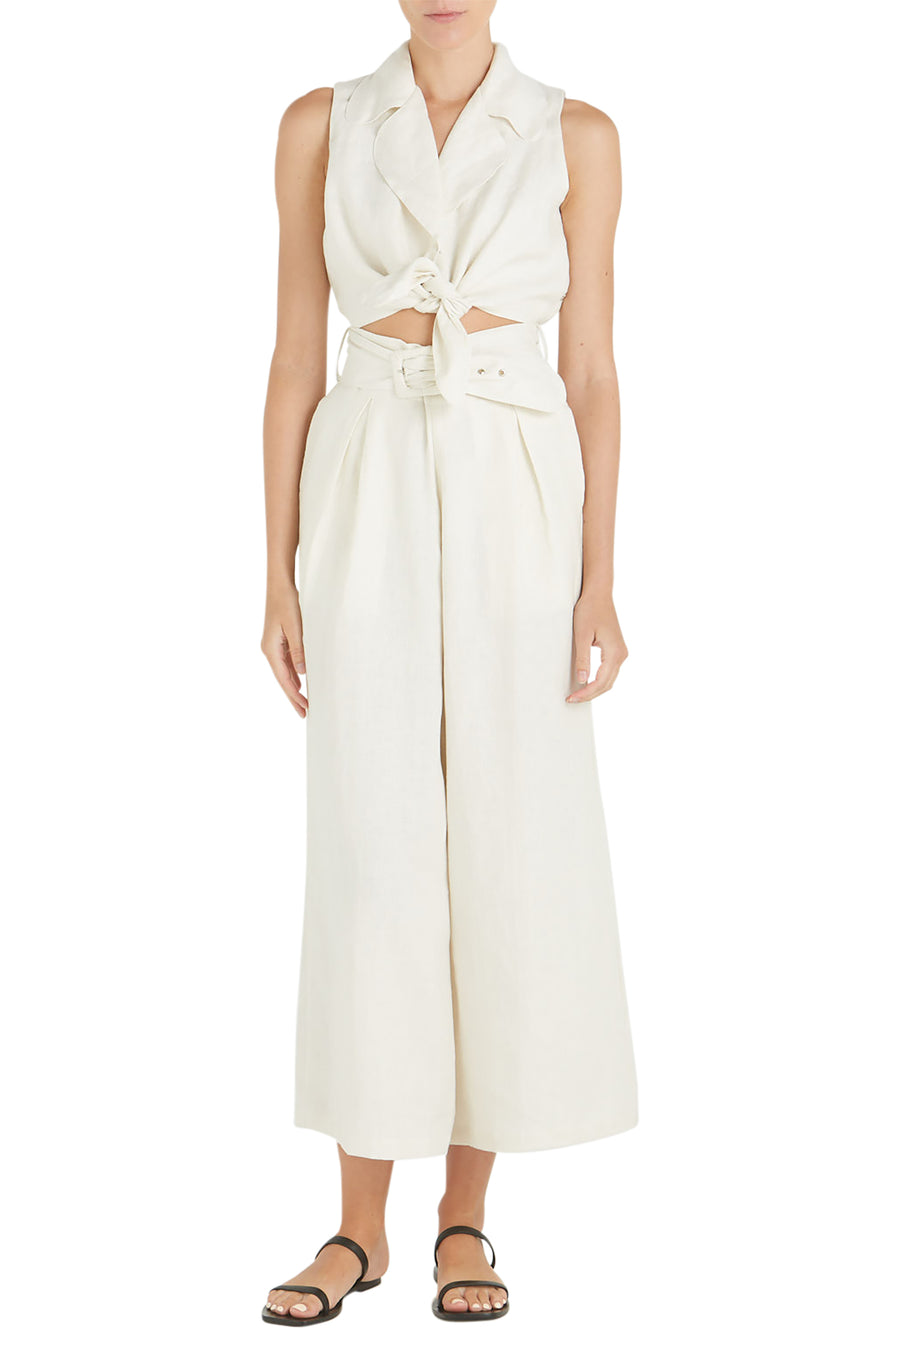 Lena Wide Leg Pants in Plain Egg White from The New Trend